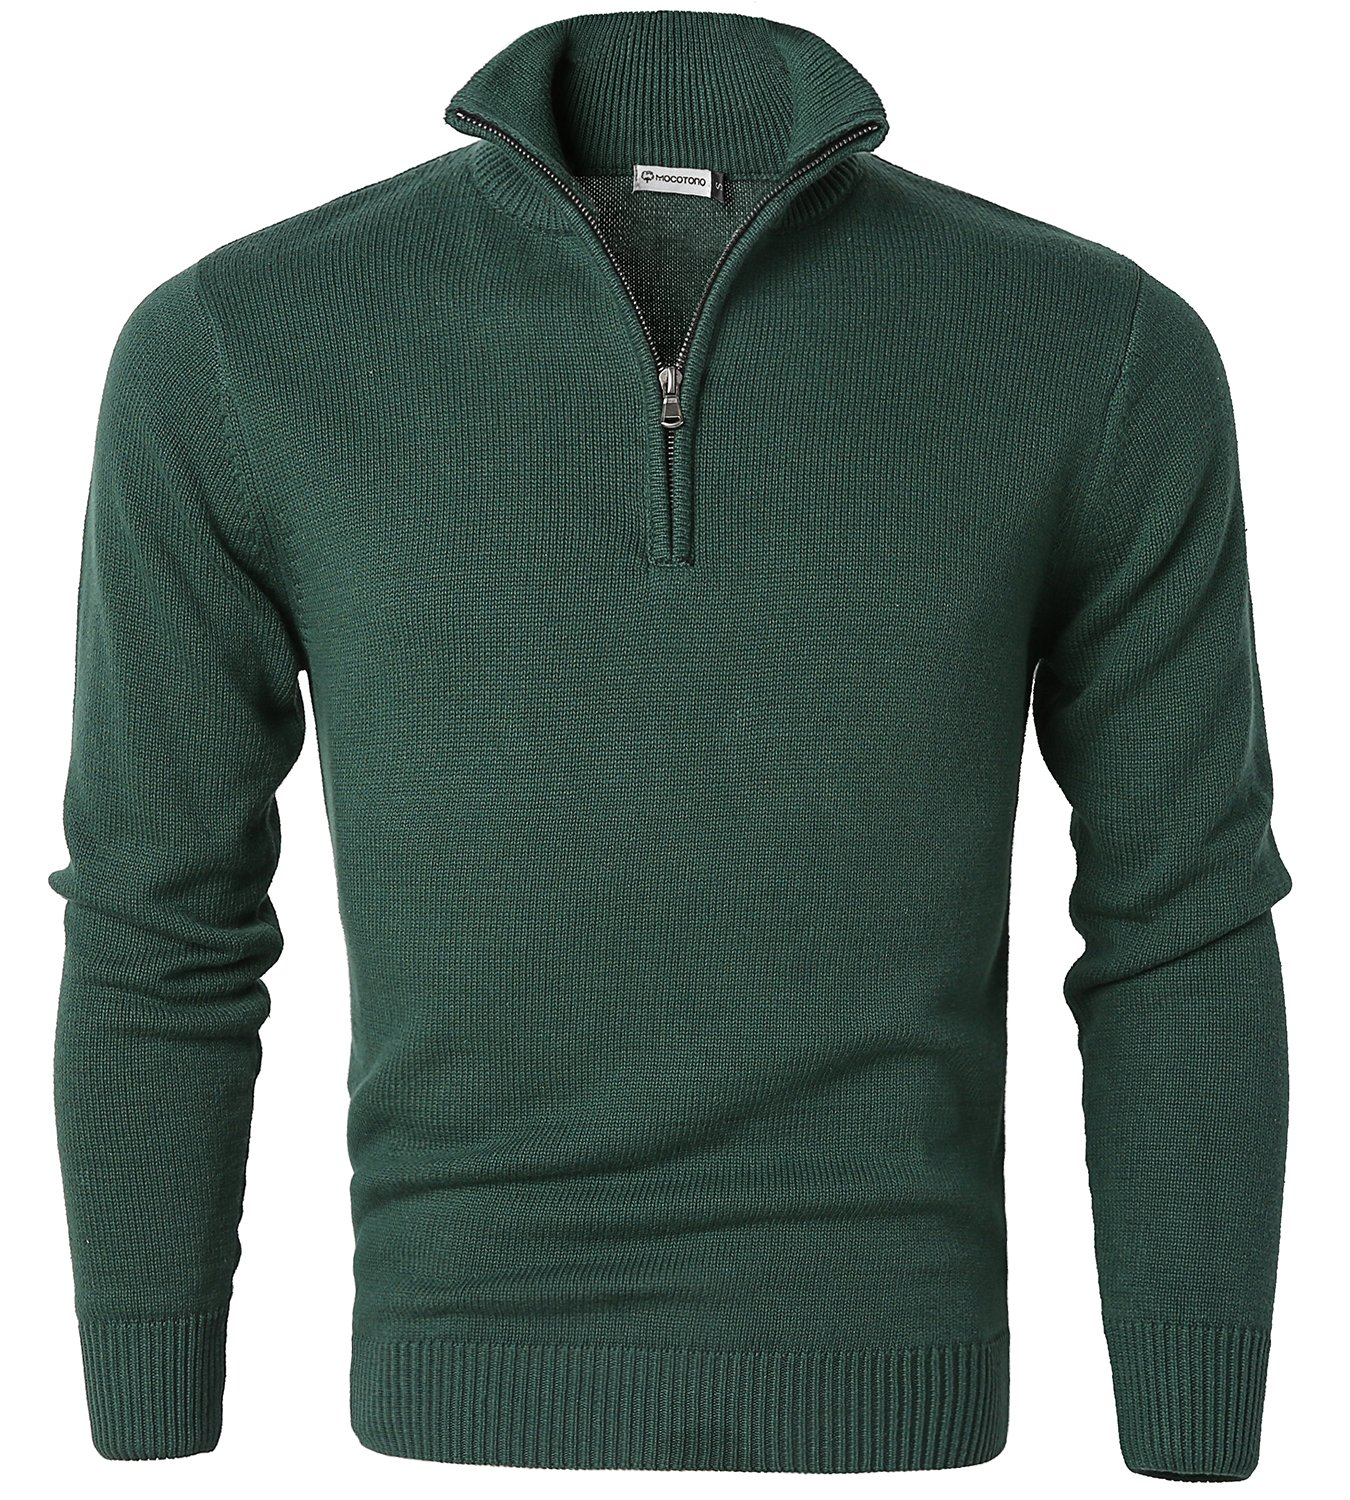 MOCOTONO Mens Long Sleeve Turtle Neck Zip Pullover Sweater Green X-Large